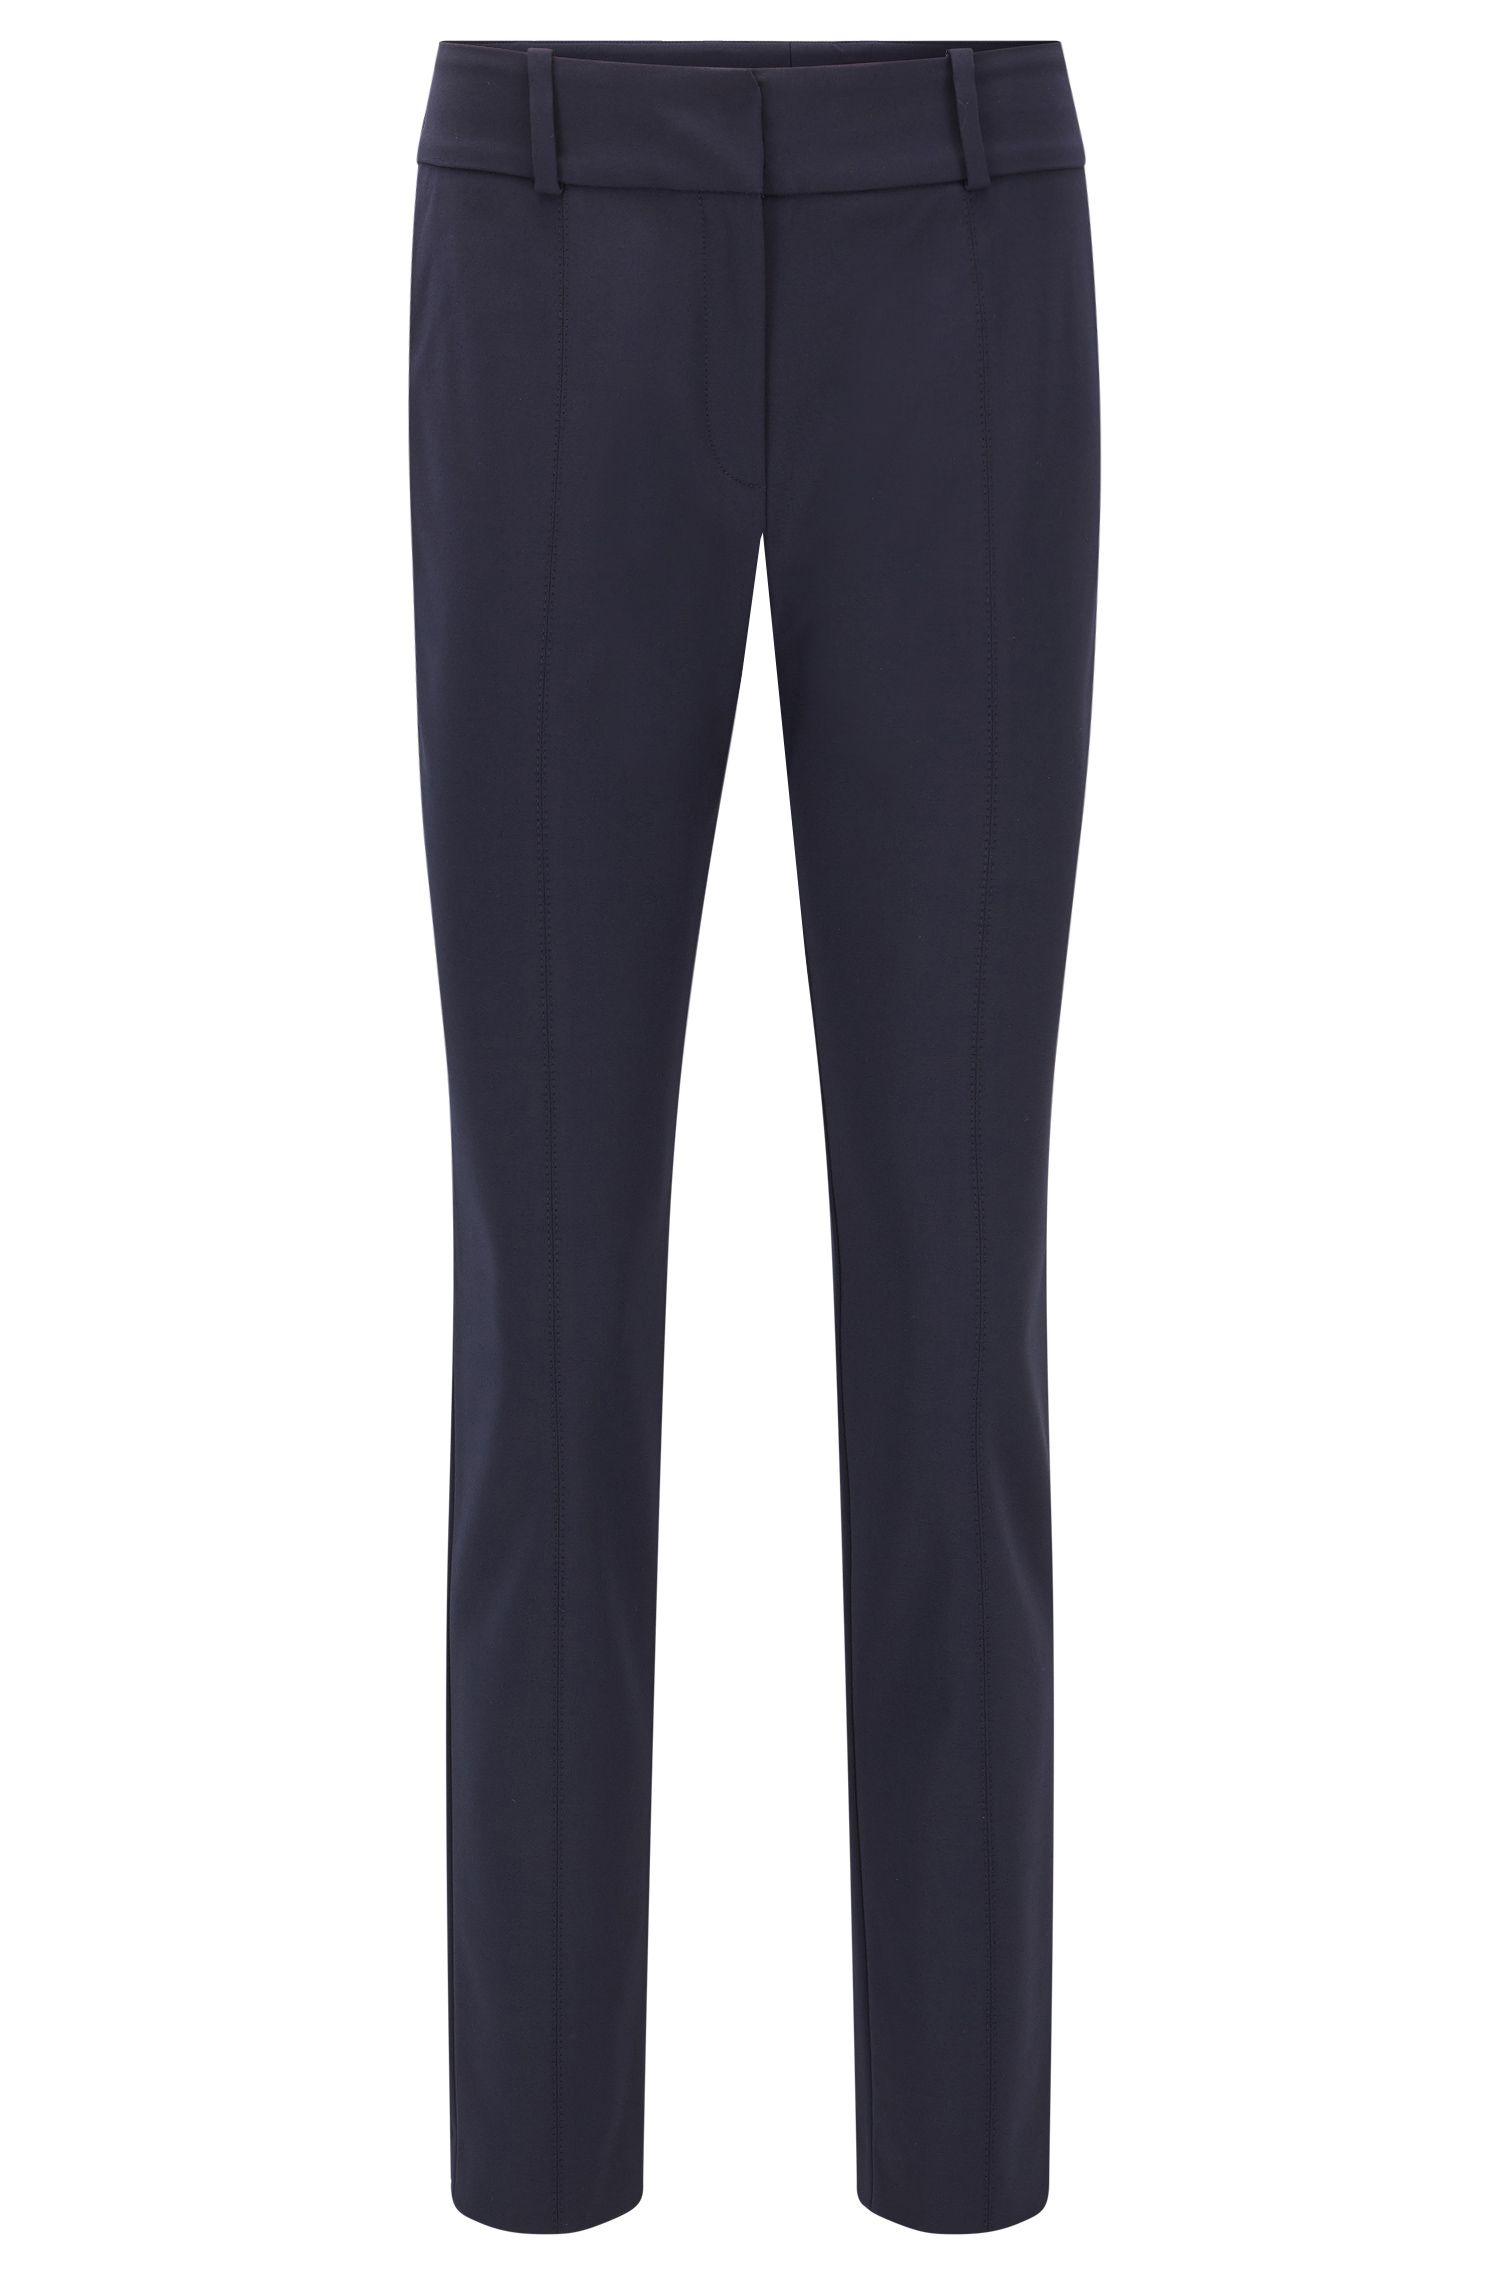 Slim-fit anti-wrinkle trousers in a cotton blend